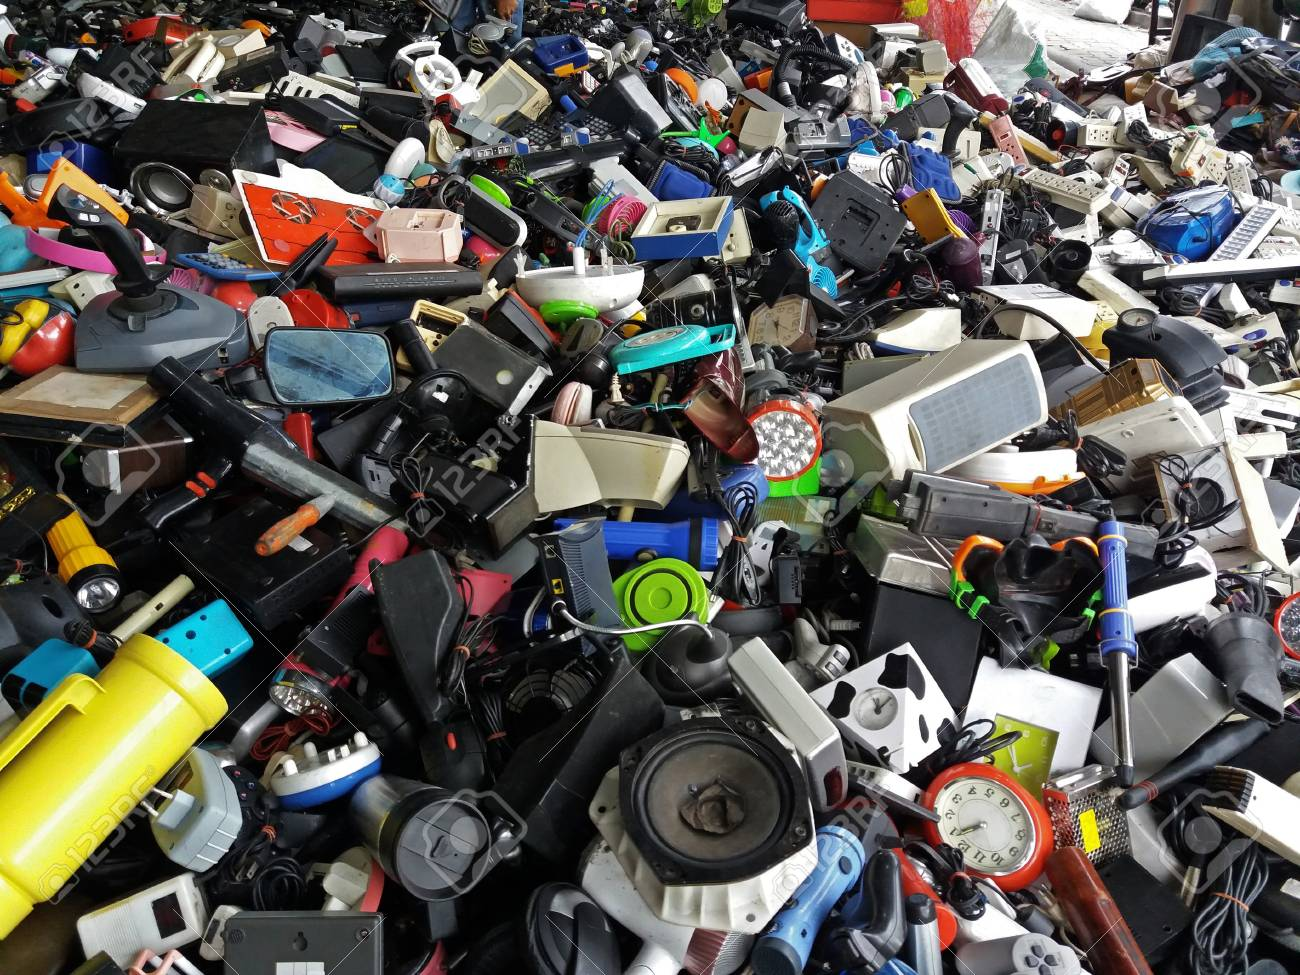 Pile of used Electronic and Housewares Waste Division broken or damage for Reuse and Recycle - 98018379